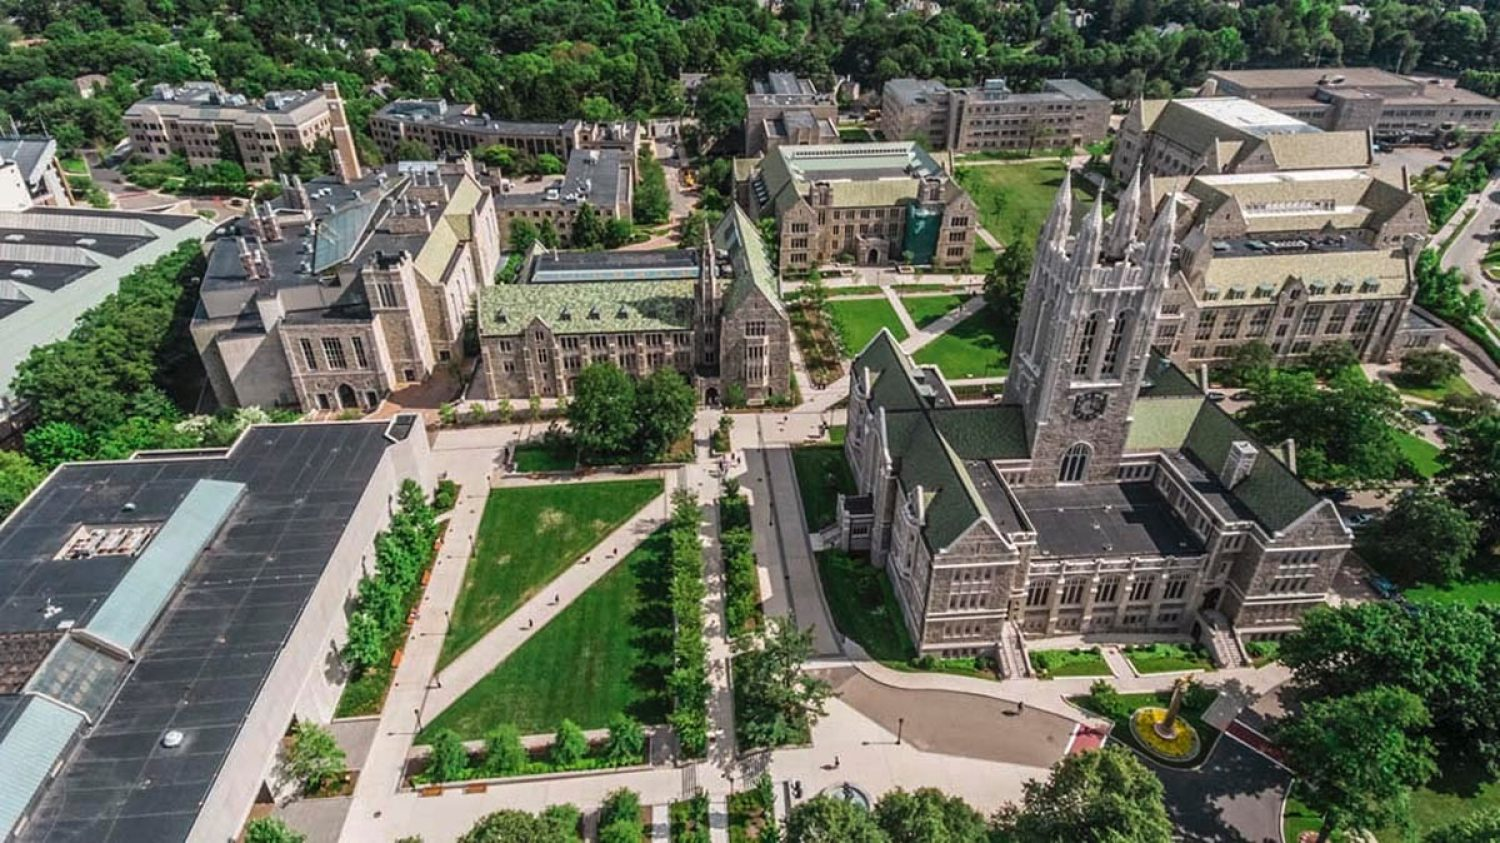 Aerial view of Boston College's campus with students crossing the quad